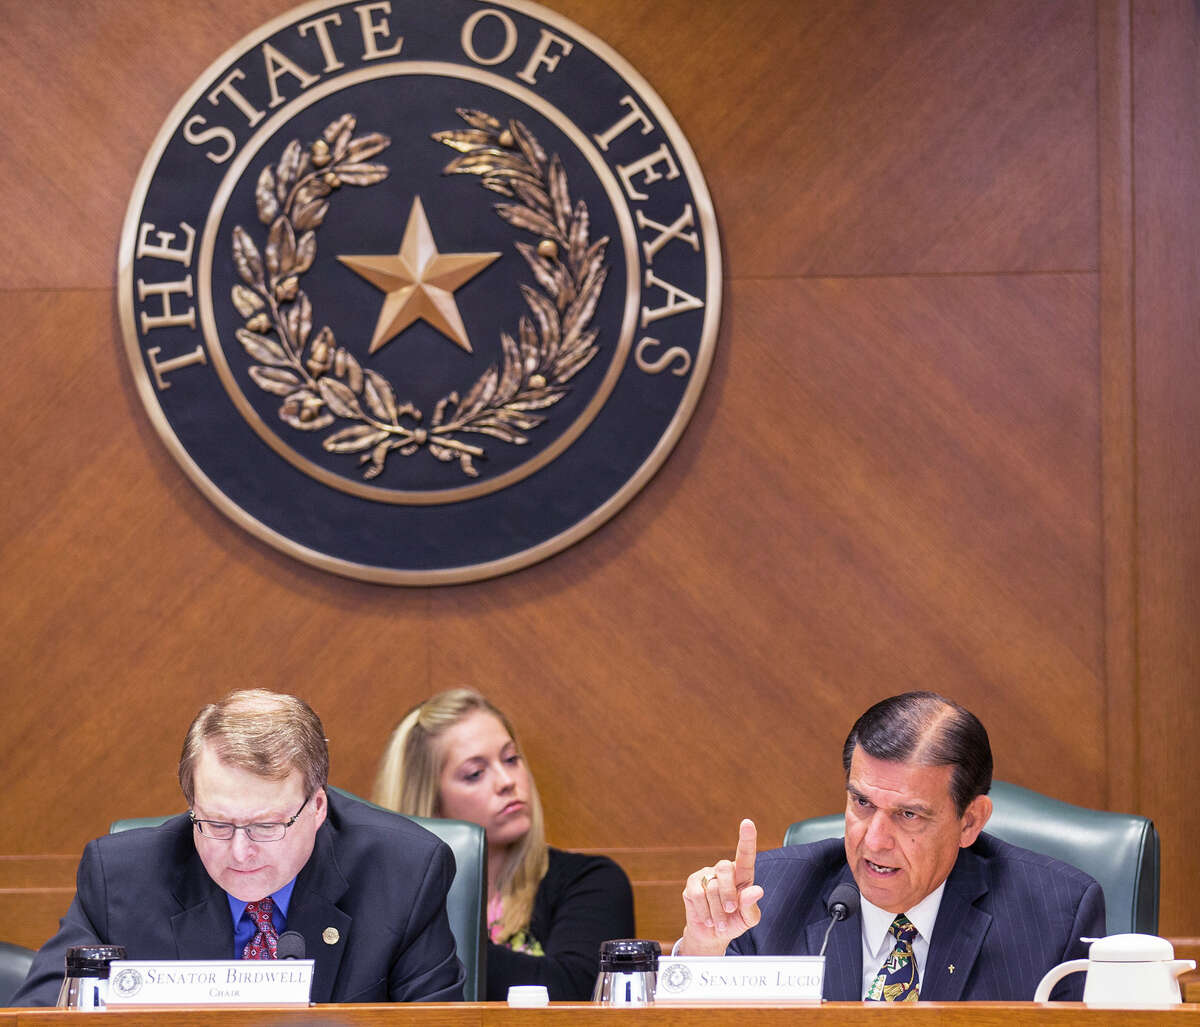 """Sen. Brian Birdwell, left, and Sen. Eddie Lucio look on during hearing on a bill that seeks to outlaw """"sanctuary cities"""" by prohibiting Texas governmental entities from passing laws to restrict police from asking about immigration status at the Texas State Capitol on Monday, March 16, 2015. (AP Photo/Austin American-Statesman, Ricardo B. Brazziell) AUSTIN CHRONICLE OUT, COMMUNITY IMPACT OUT, INTERNET AND TV MUST CREDIT PHOTOGRAPHER AND STATESMAN.COM, MAGS OUT"""